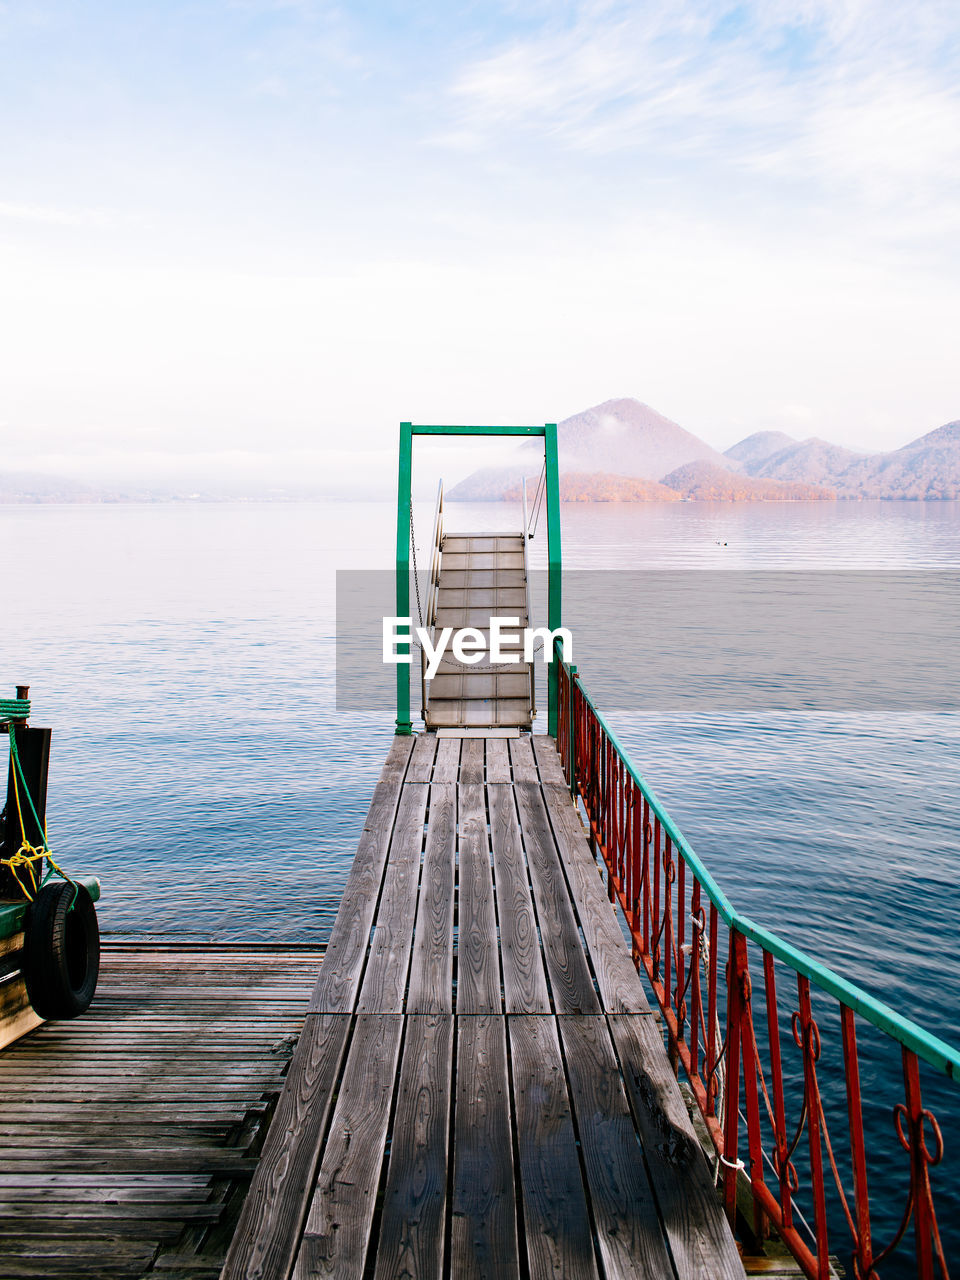 sky, water, wood - material, beauty in nature, scenics - nature, nature, tranquil scene, sea, tranquility, cloud - sky, the way forward, pier, direction, day, no people, railing, wood paneling, idyllic, empty, outdoors, horizon over water, wood, long